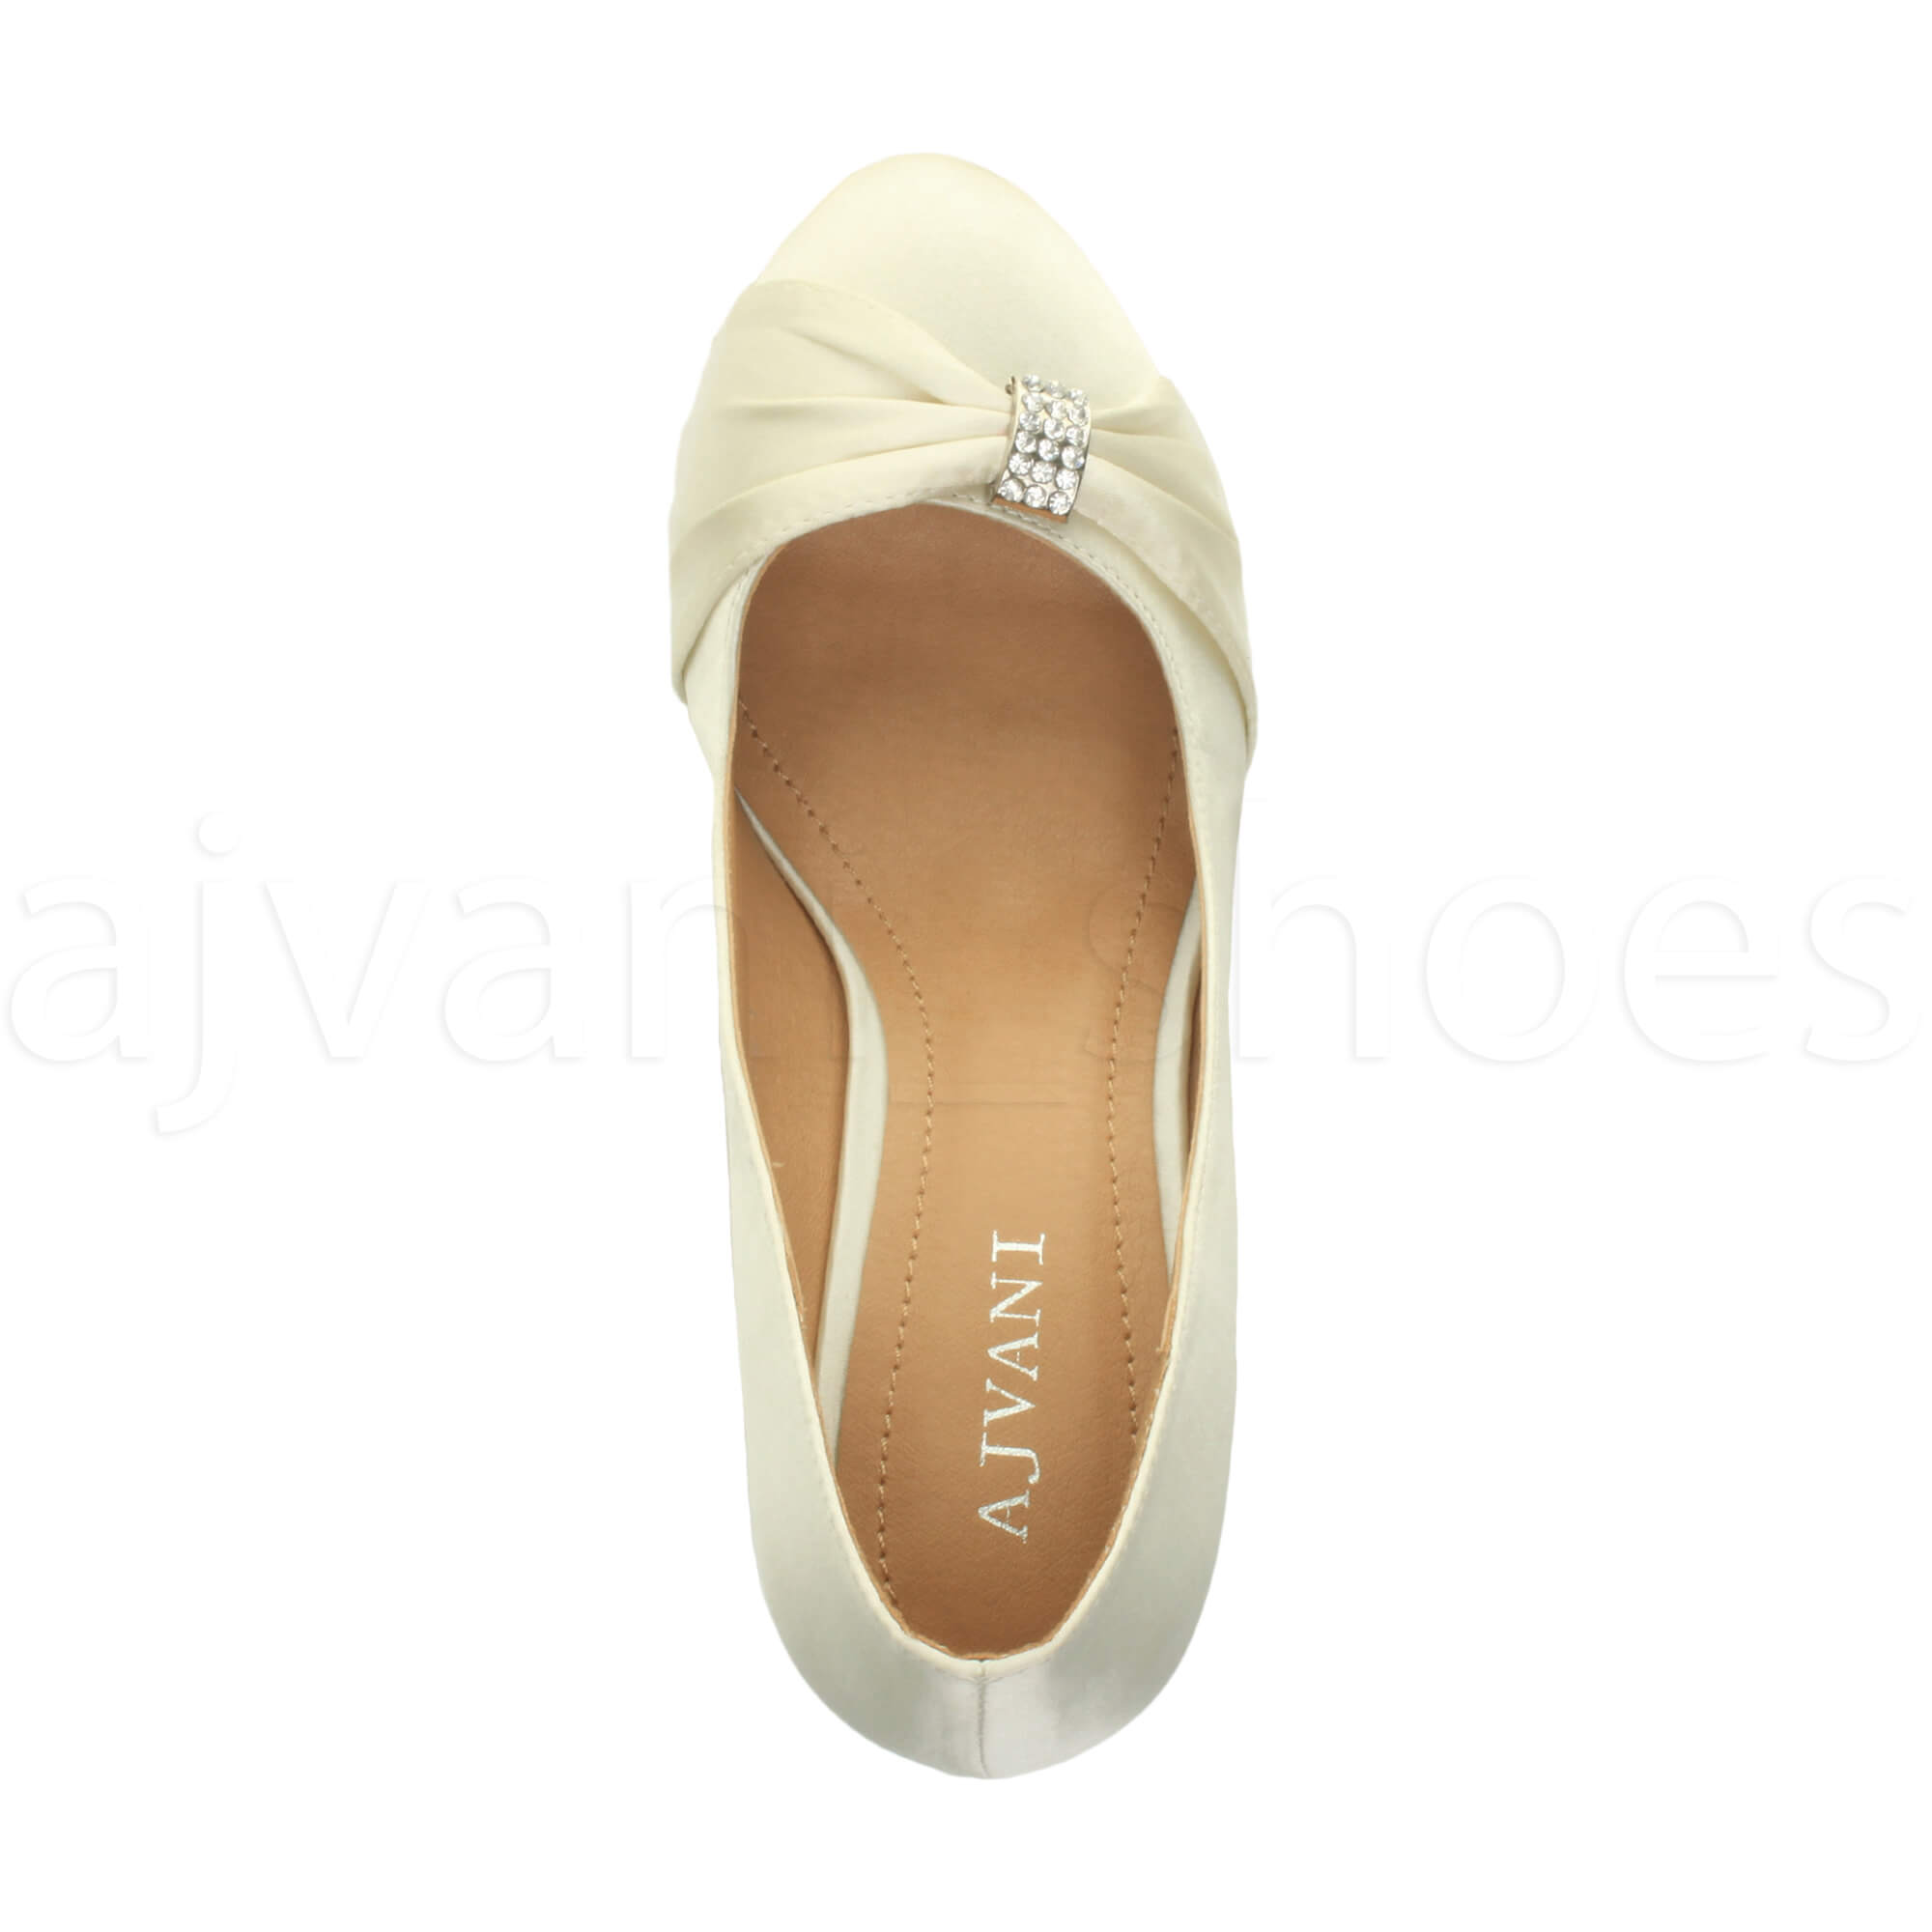 WOMENS-LADIES-MID-HEEL-RUCHED-DIAMANTE-WEDDING-PROM-EVENING-COURT-SHOES-SIZE thumbnail 40